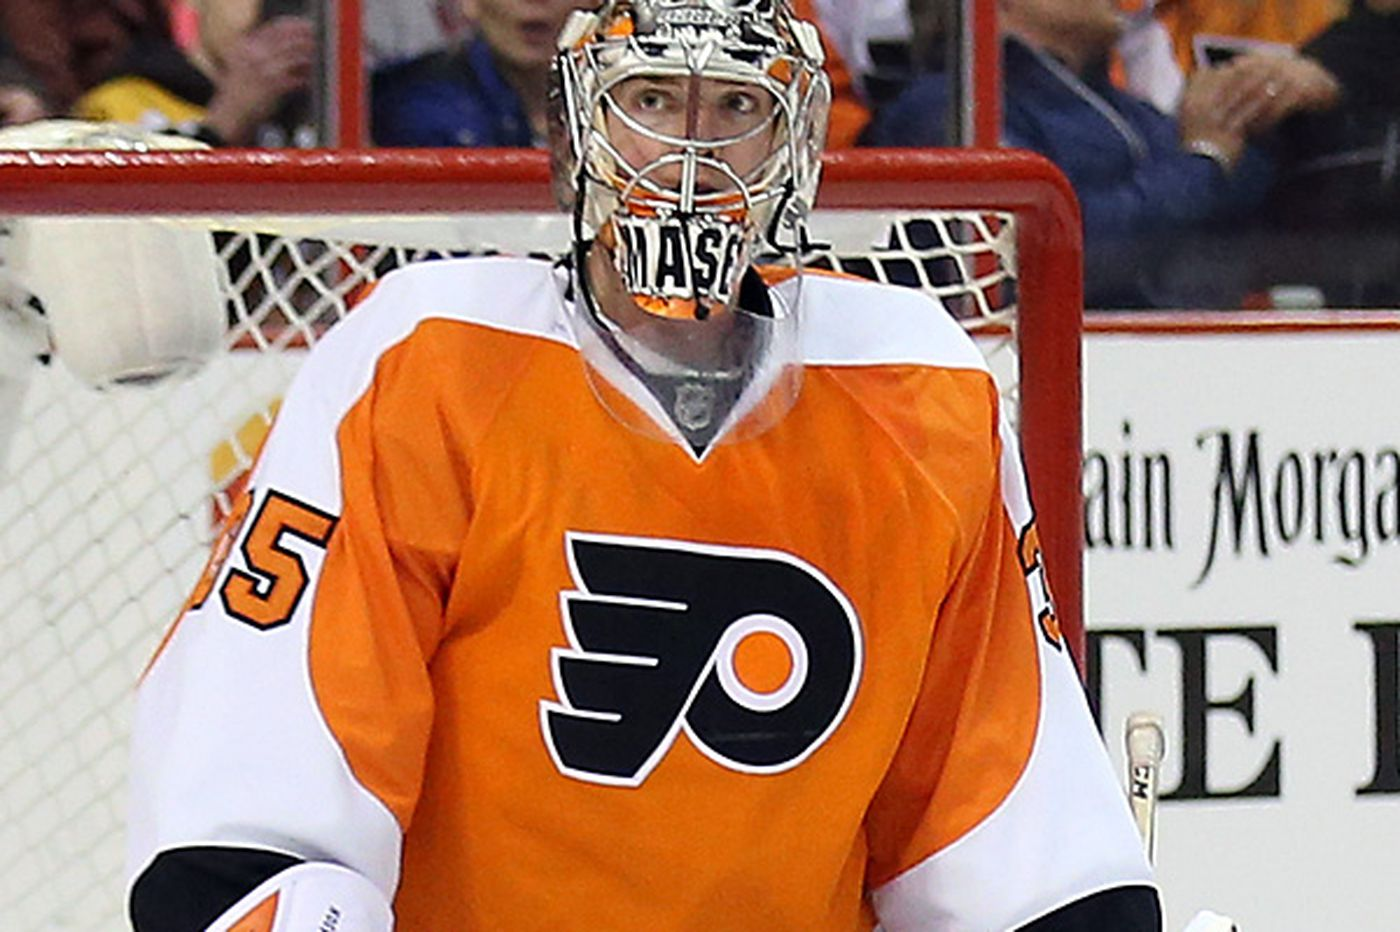 Flyers expect to decide on Mason by Wednesday